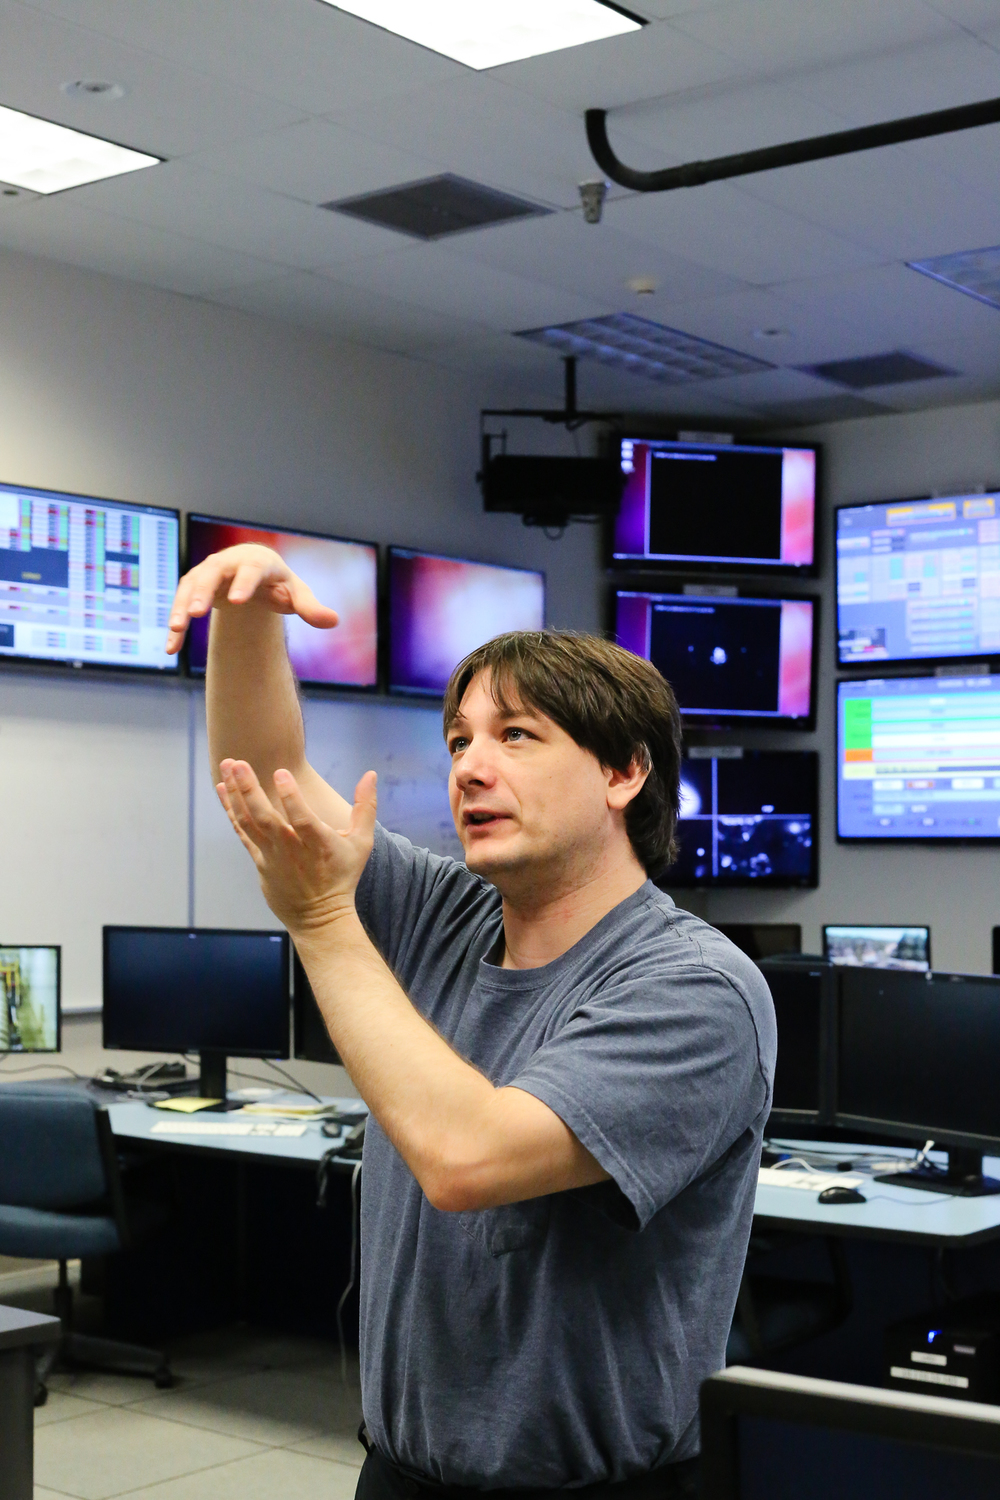 Joe Betzwieser giving a tour at LIGO. Photo by Paige Jarreau.